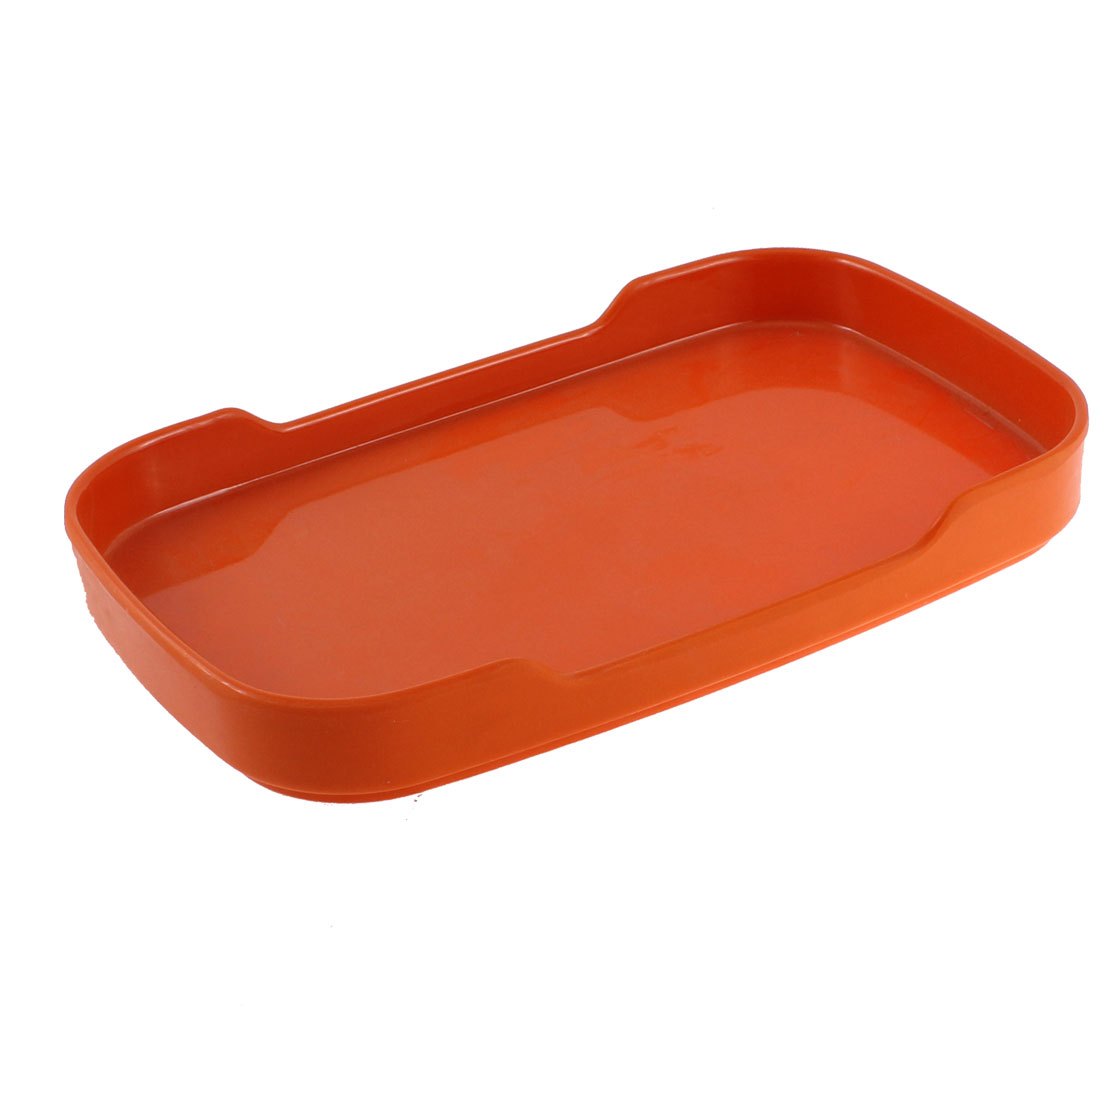 Dinner Lunch Plastic Rectangle Shaped Holder Plate Dish Orange 8.5''